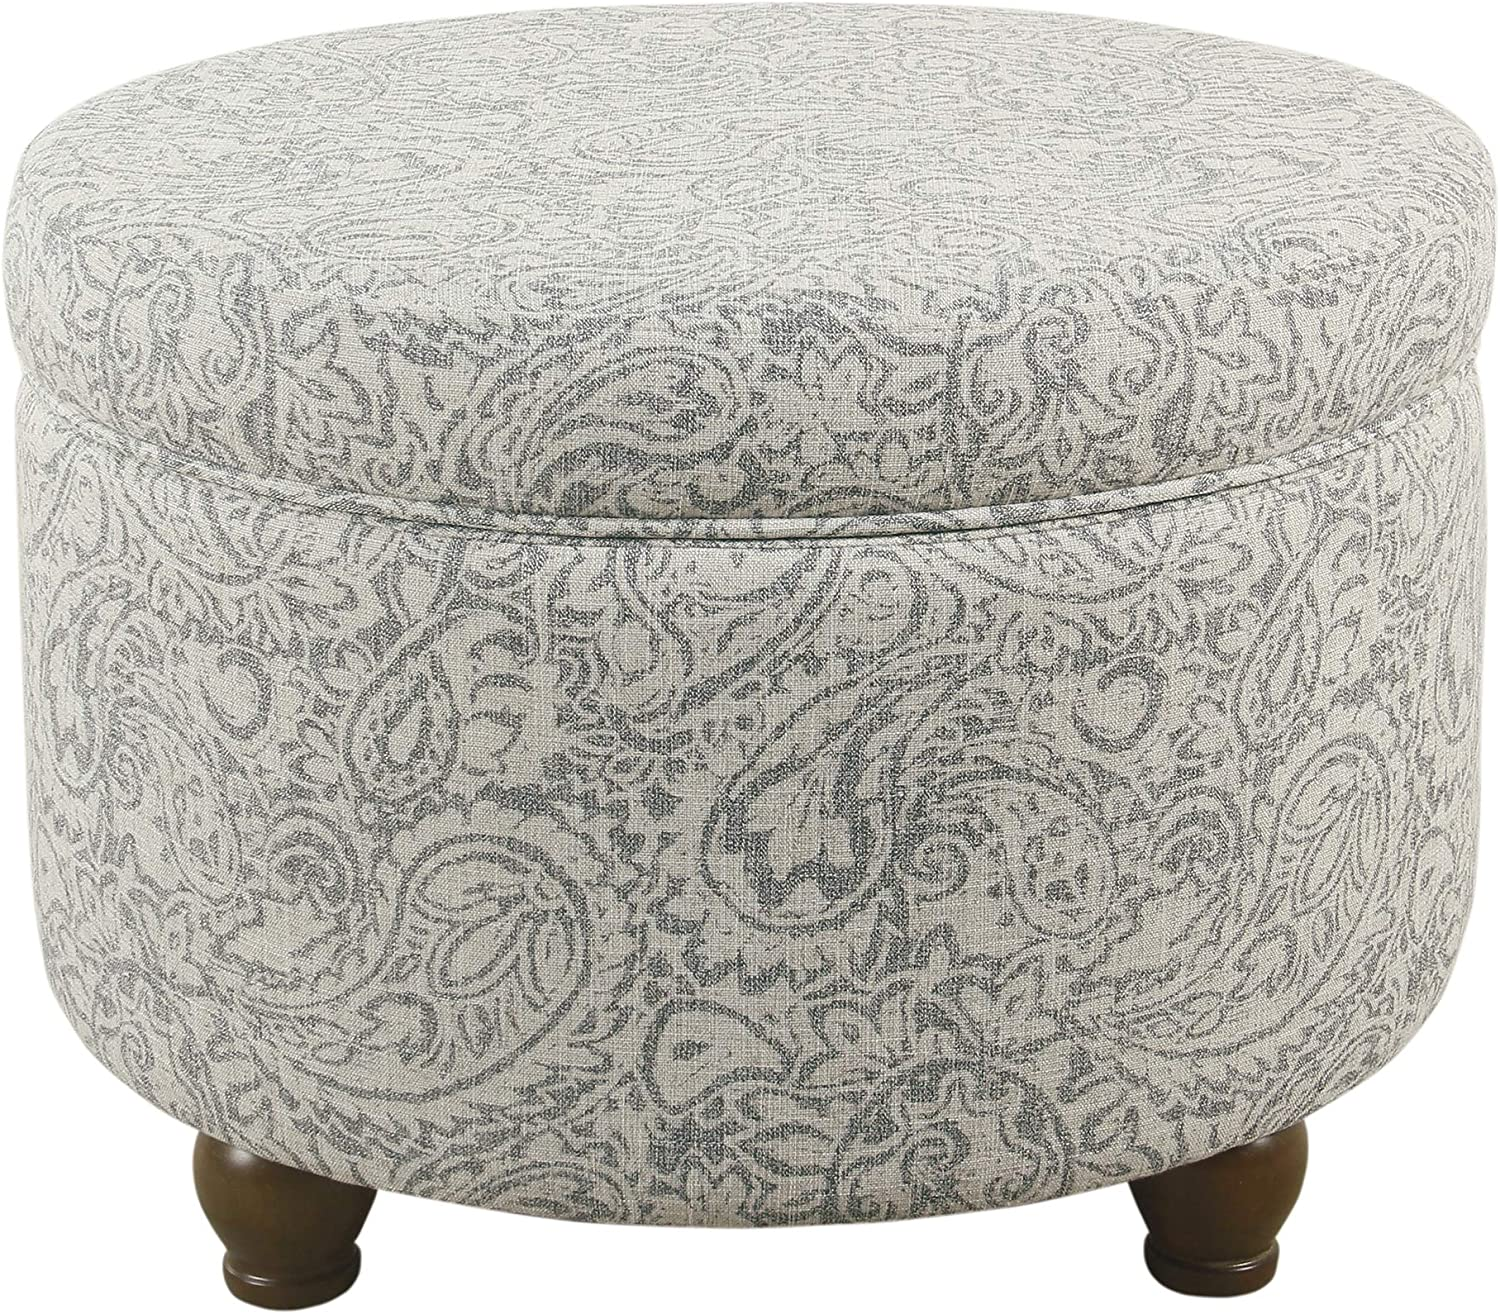 HomePop Upholstered Round Storage Ottoman Gray Lid Max 65% OFF San Jose Mall Floral with